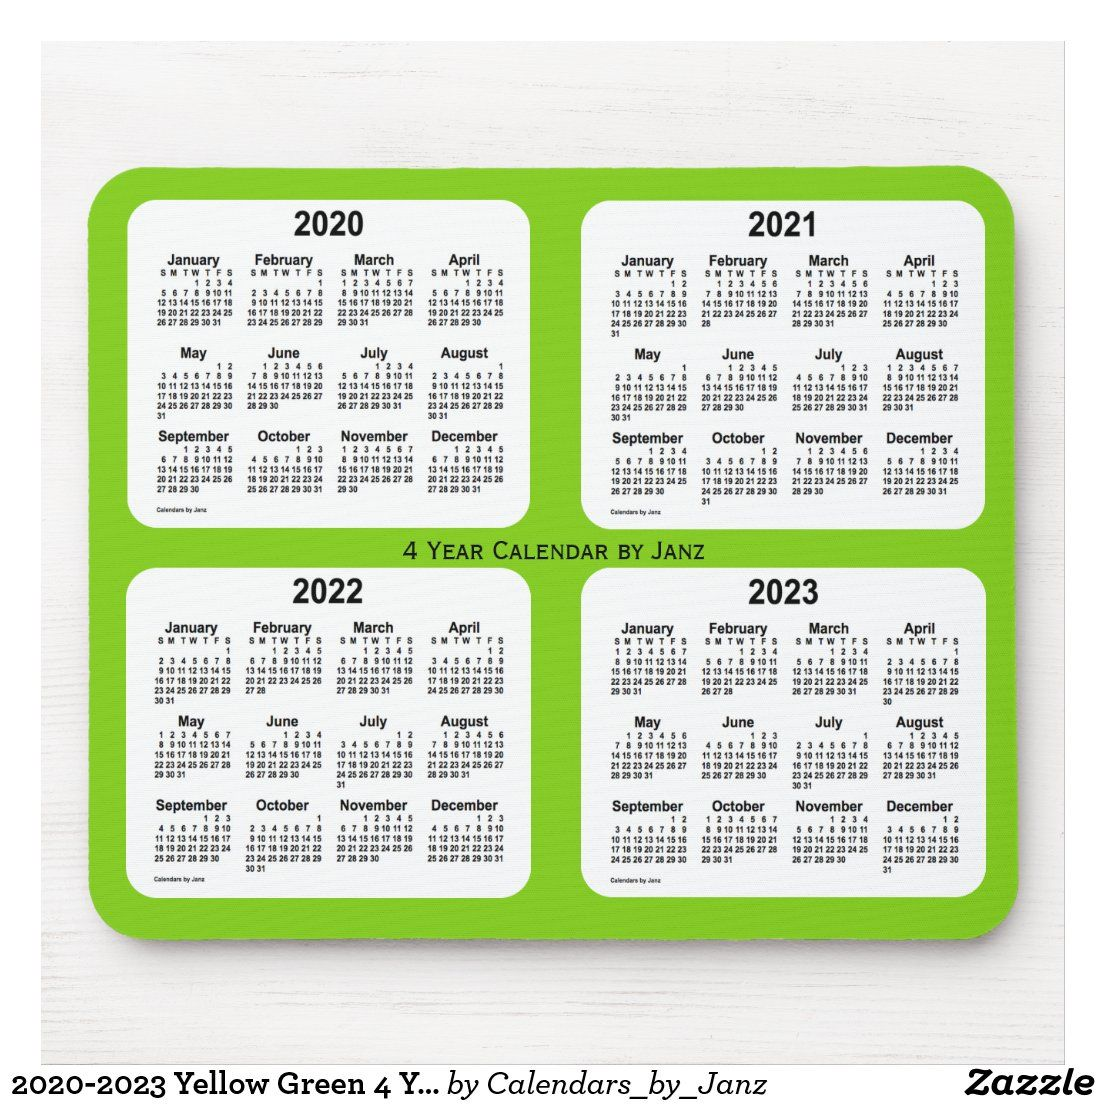 2020-2023 Yellow Green 4 Year Calendar by Janz Mouse Pad ...